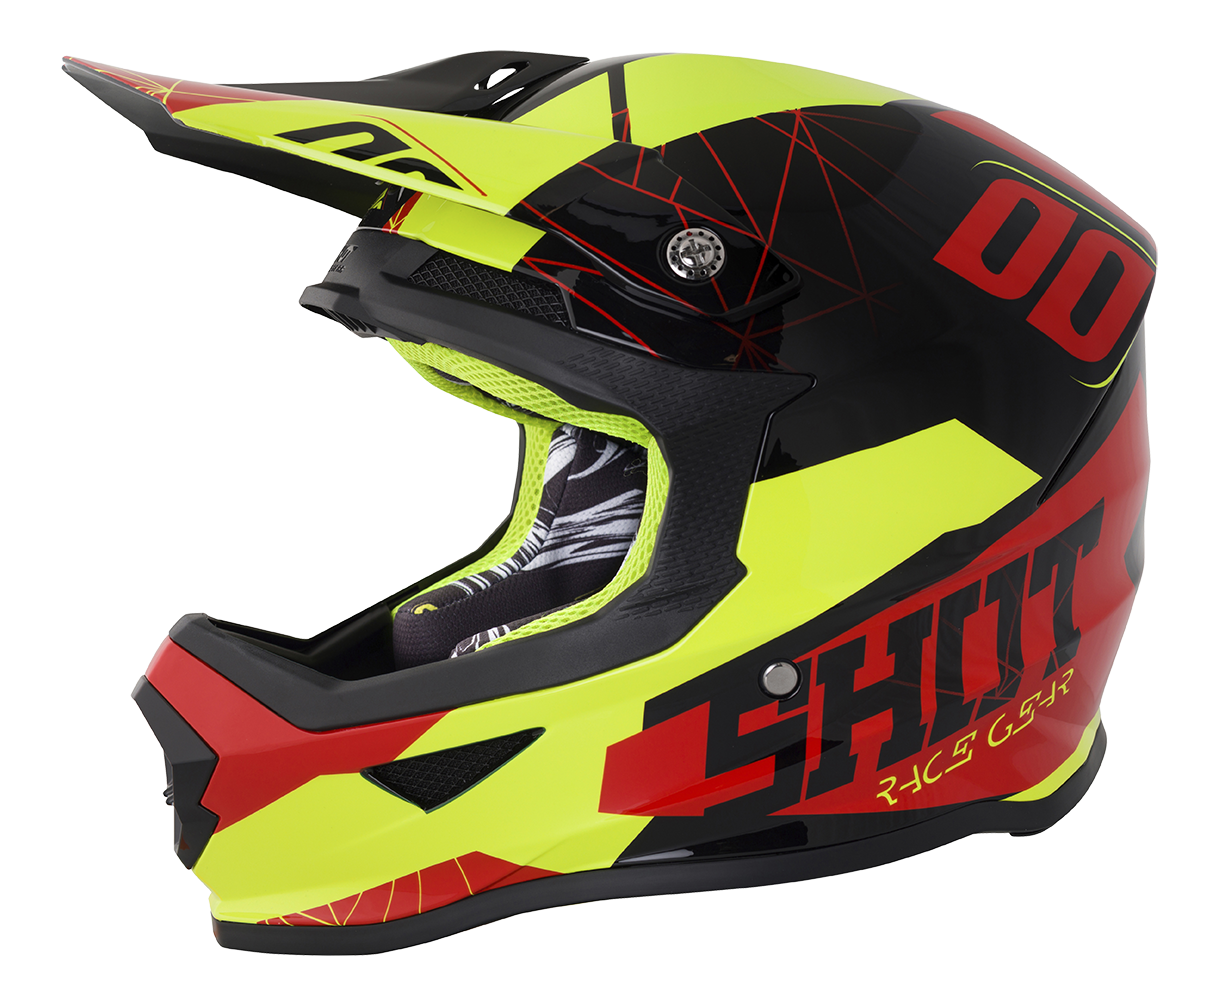 SHOT RACE GEAR 2018  HELMA III FURIOUS SPECTRE RED / NEON YELLOW BRILLANT